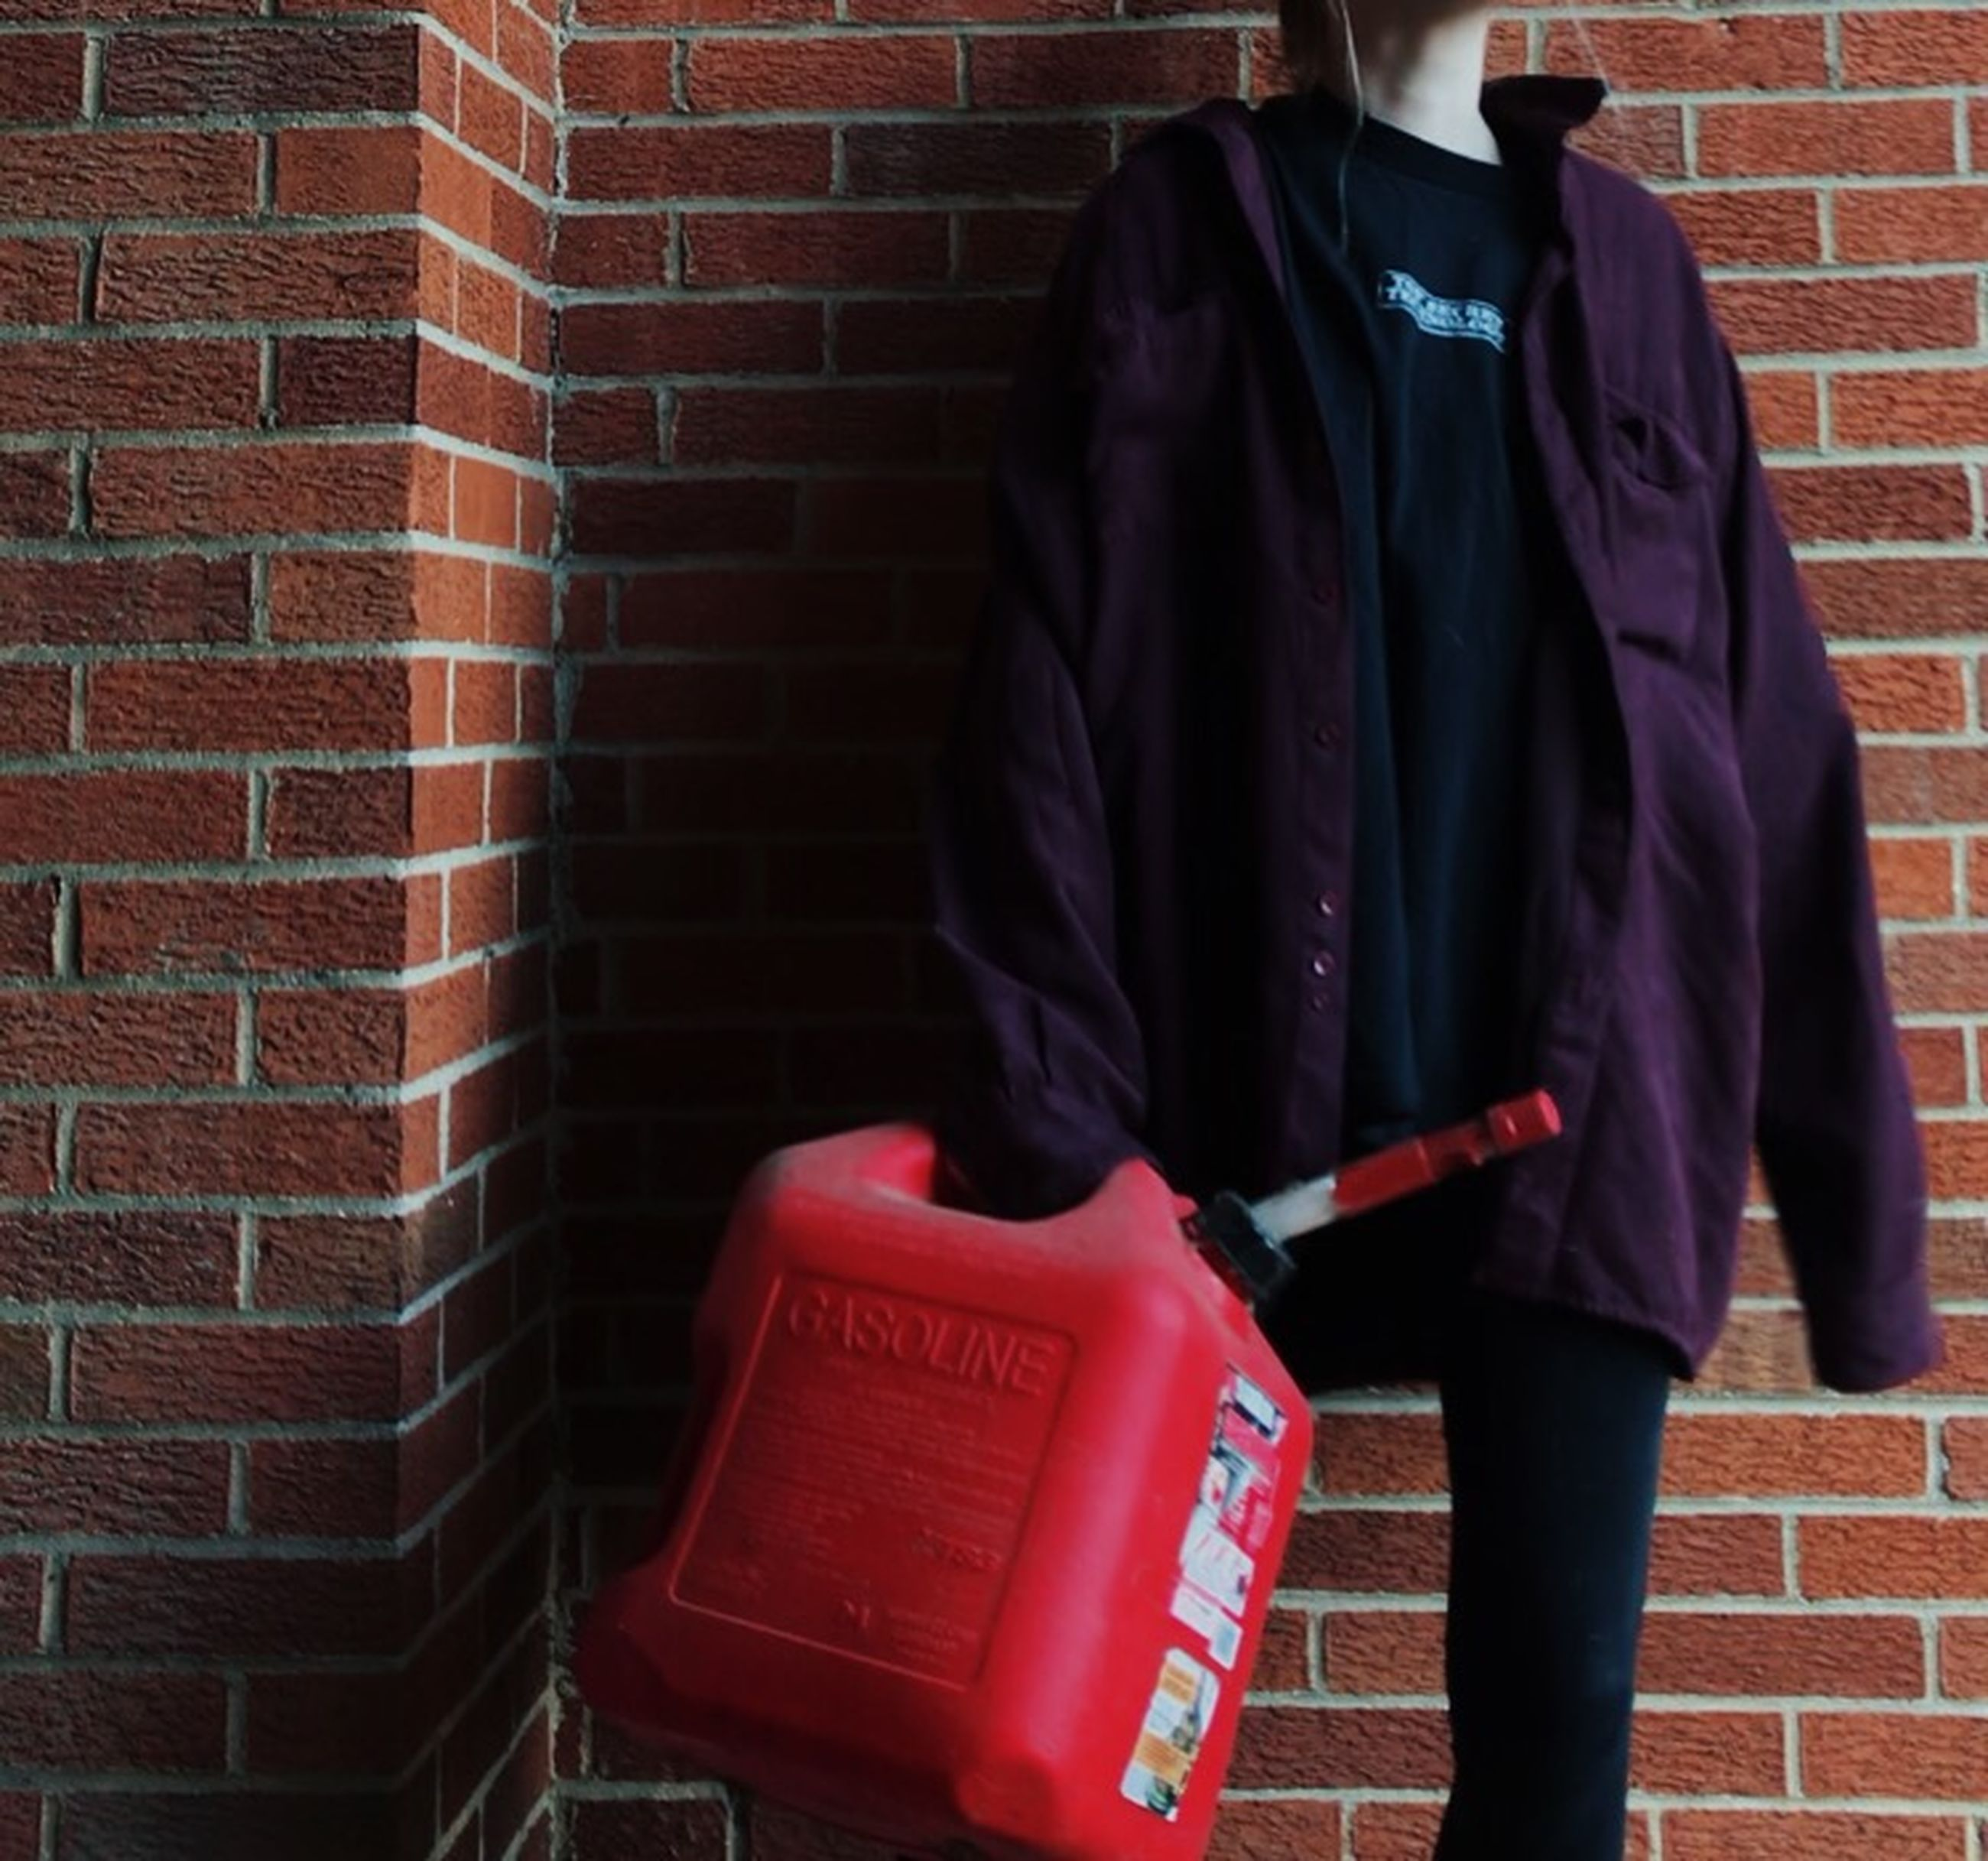 brick, brick wall, wall, one person, wall - building feature, real people, standing, red, day, text, clothing, men, bag, architecture, three quarter length, rear view, walking, lifestyles, holding, outdoors